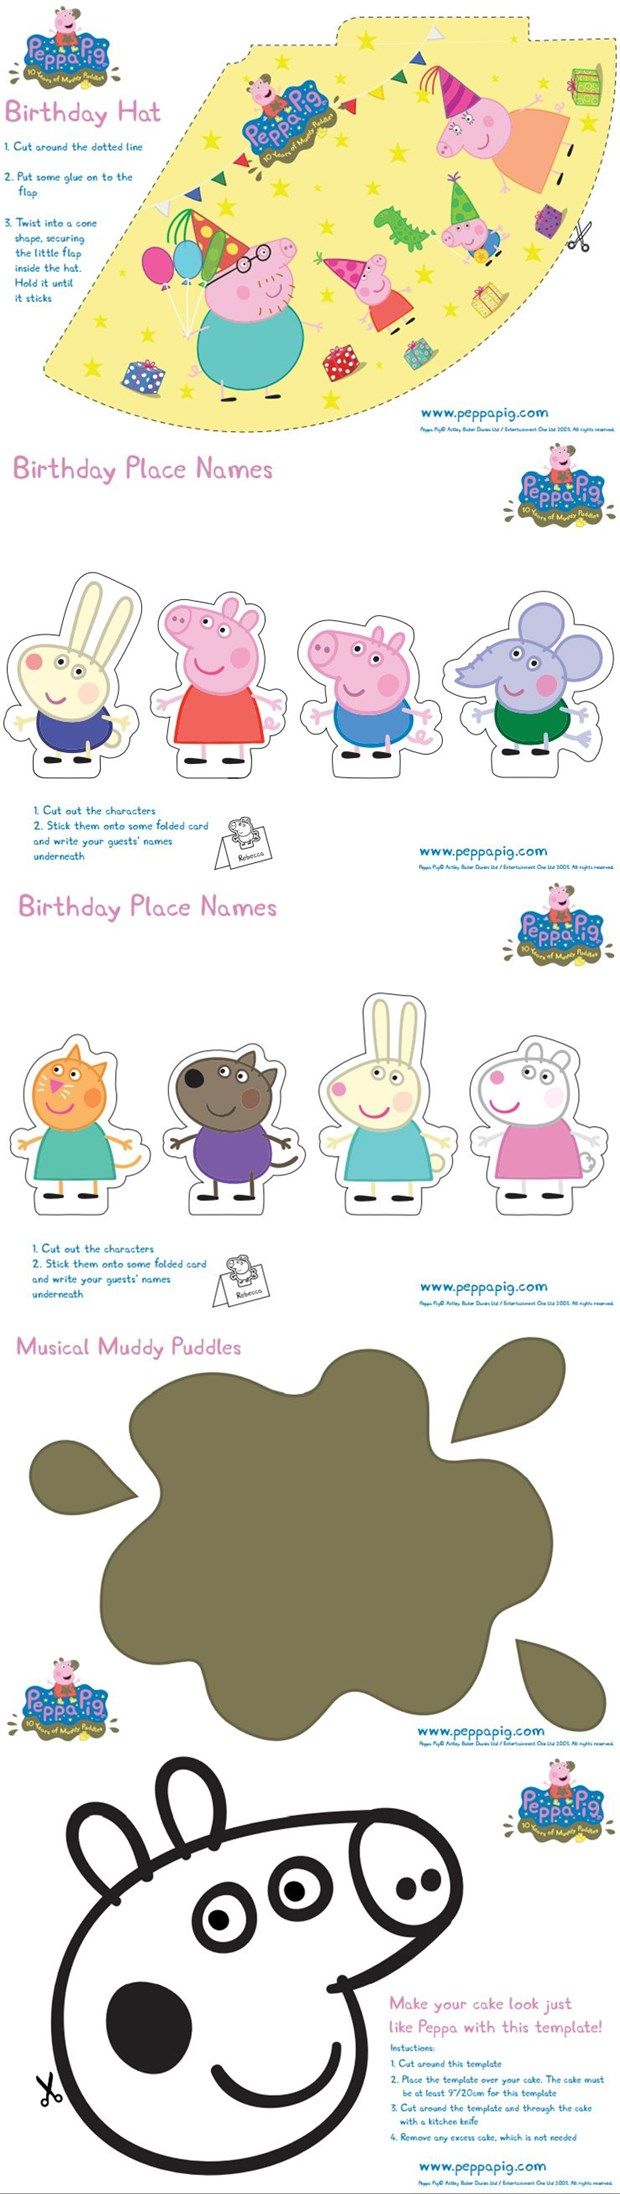 Peppa Pig Party Ideas & DIY for Parties